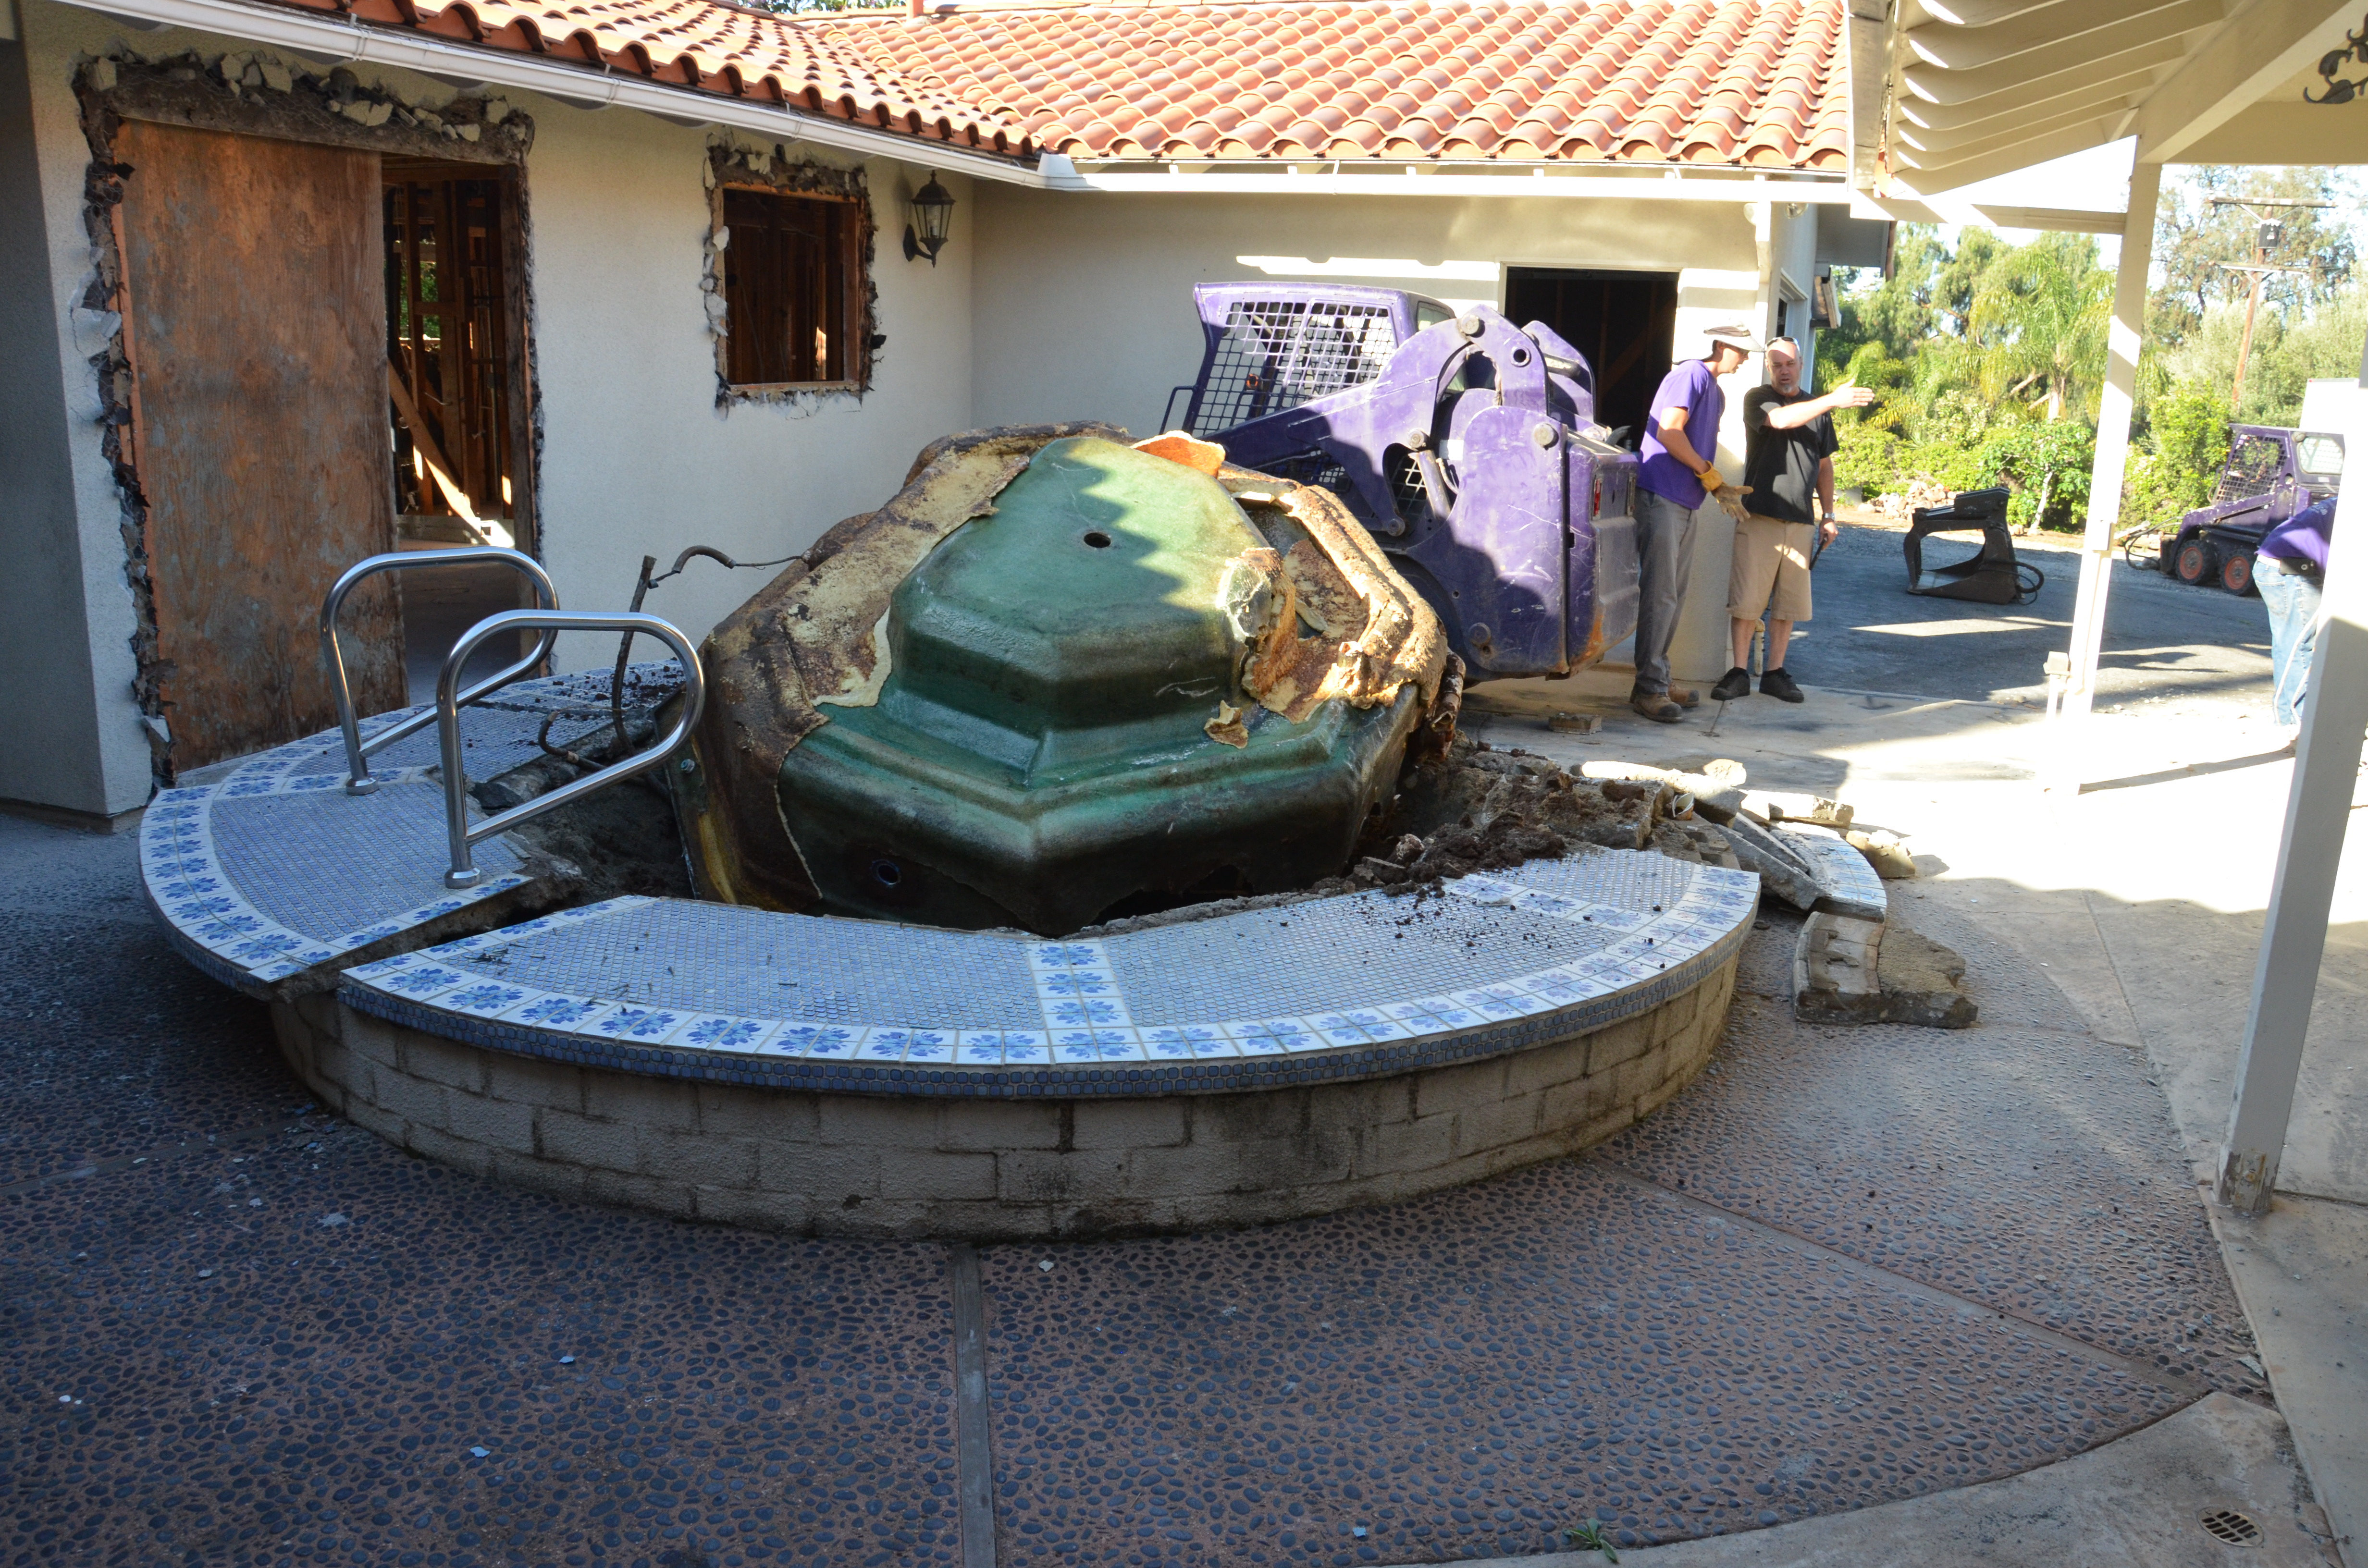 Spa Amp Hot Tub Removal Services San Diego Ace Hauling